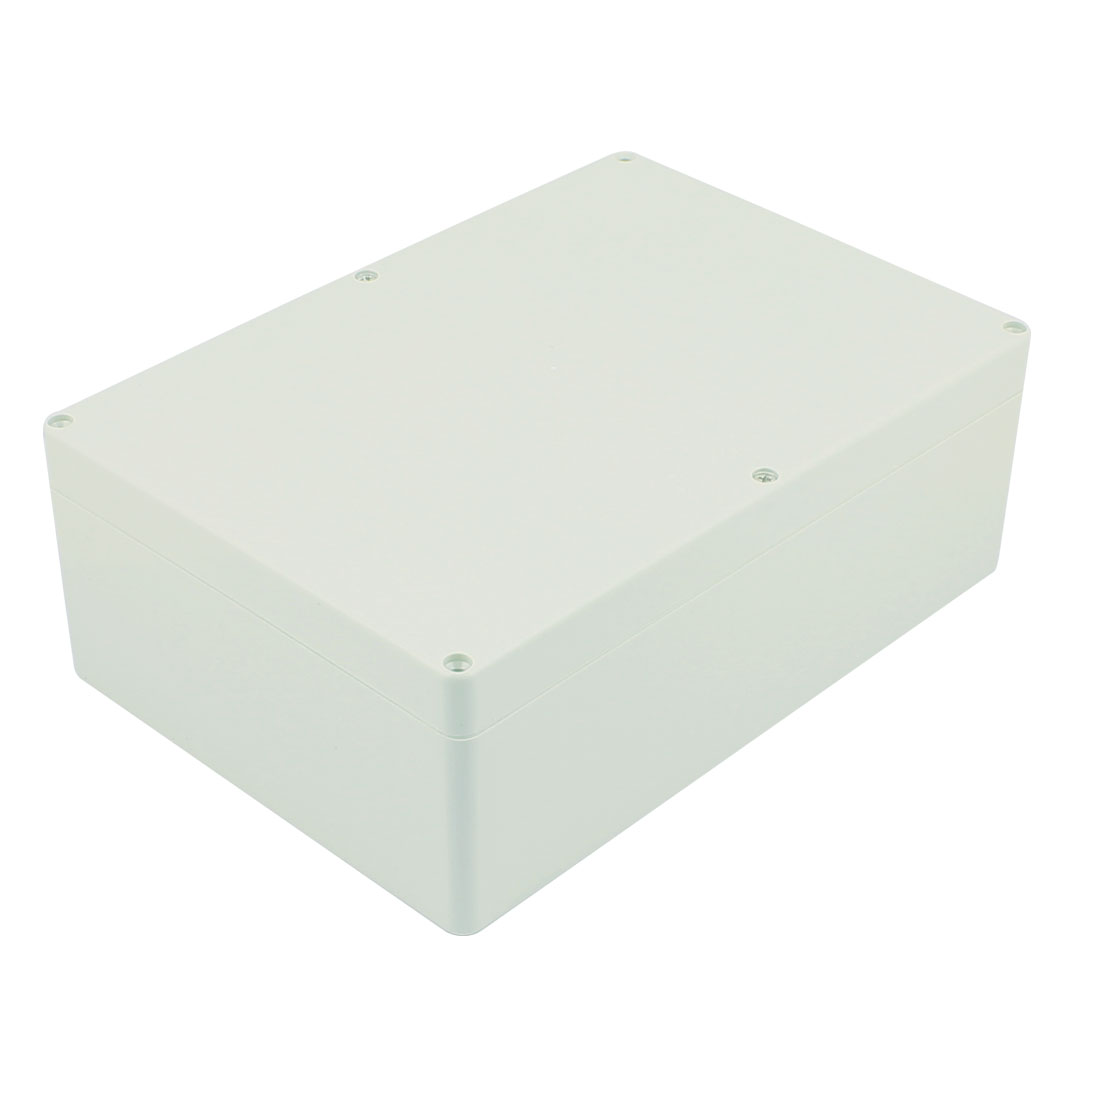 Dustproof IP65 Junction Box DIY Terminal Connection Enclosure Adaptable 255mm x 174mm x 87mm